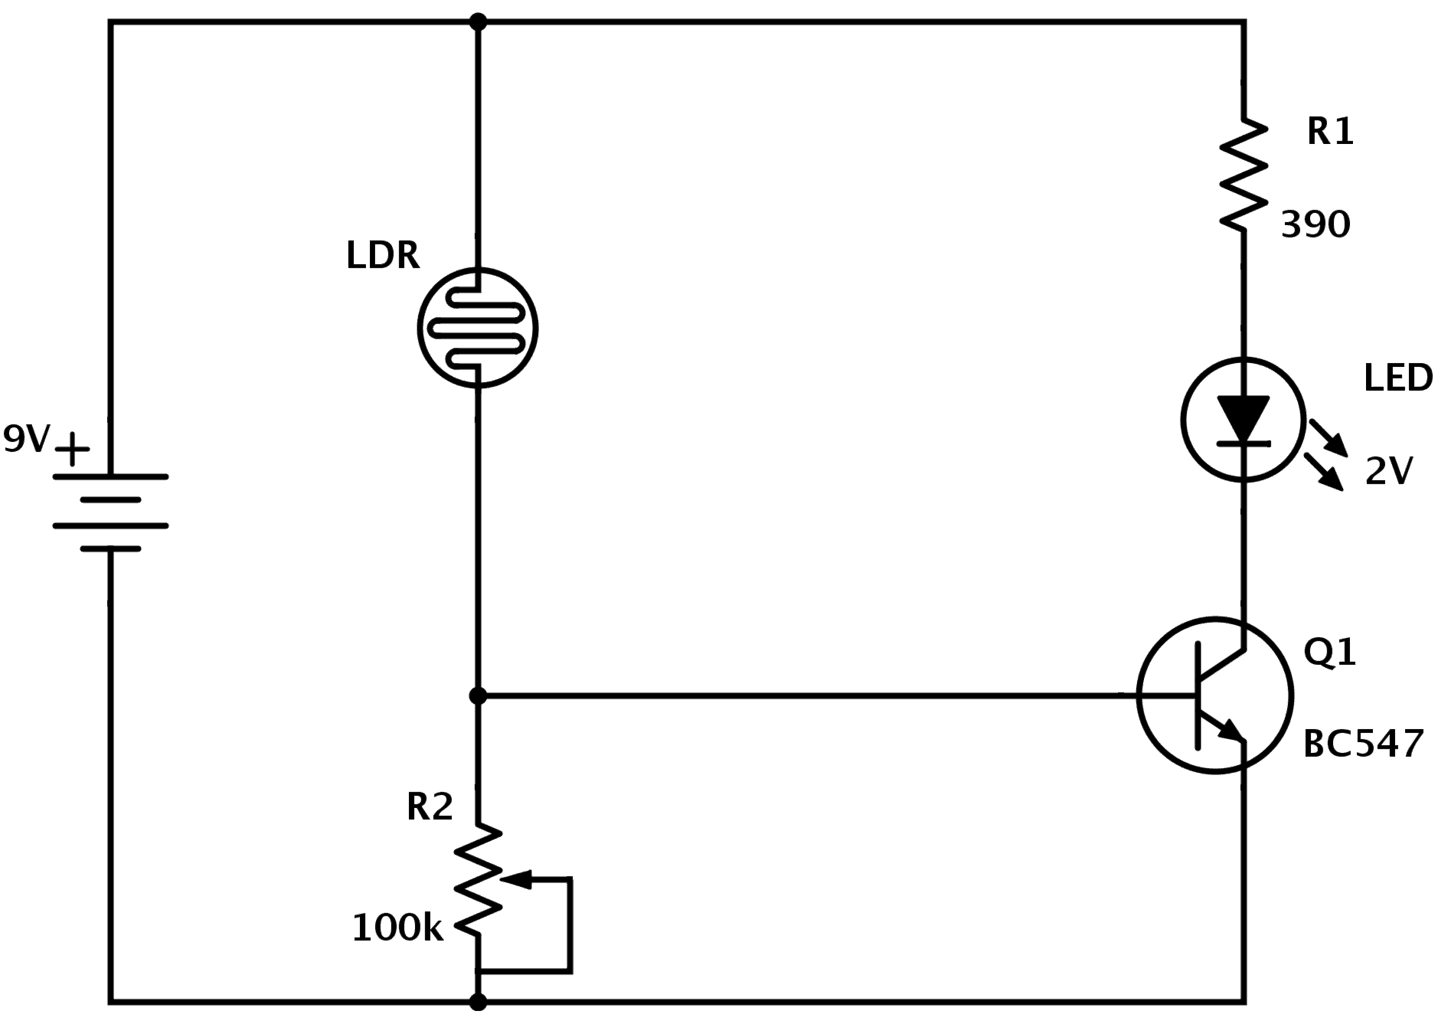 Wall Switch Schematic Wiring Diagram Ldr Circuit Build Electronic Circuits